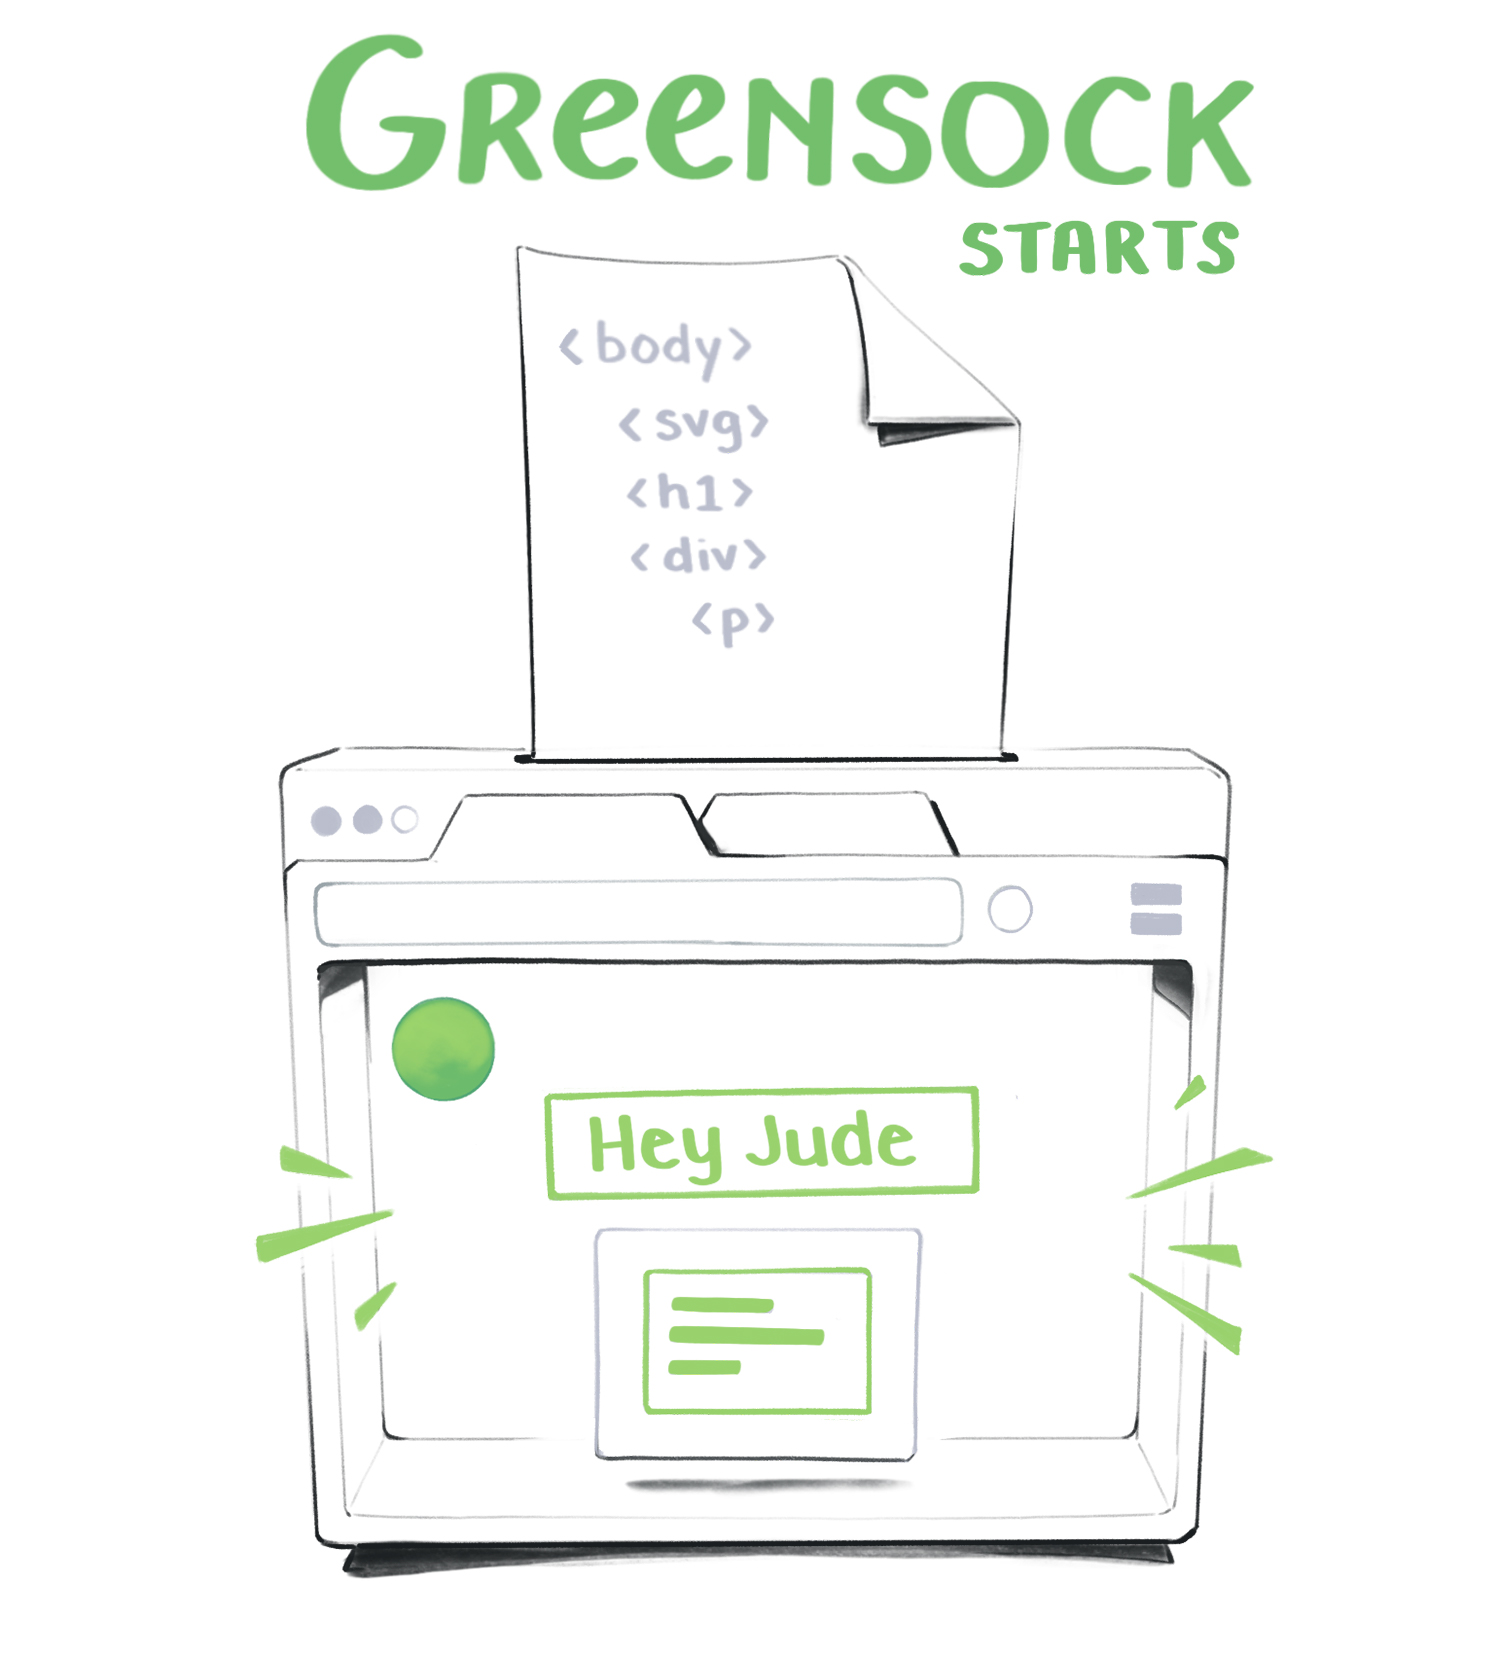 Greensock animation changes DOM nodes